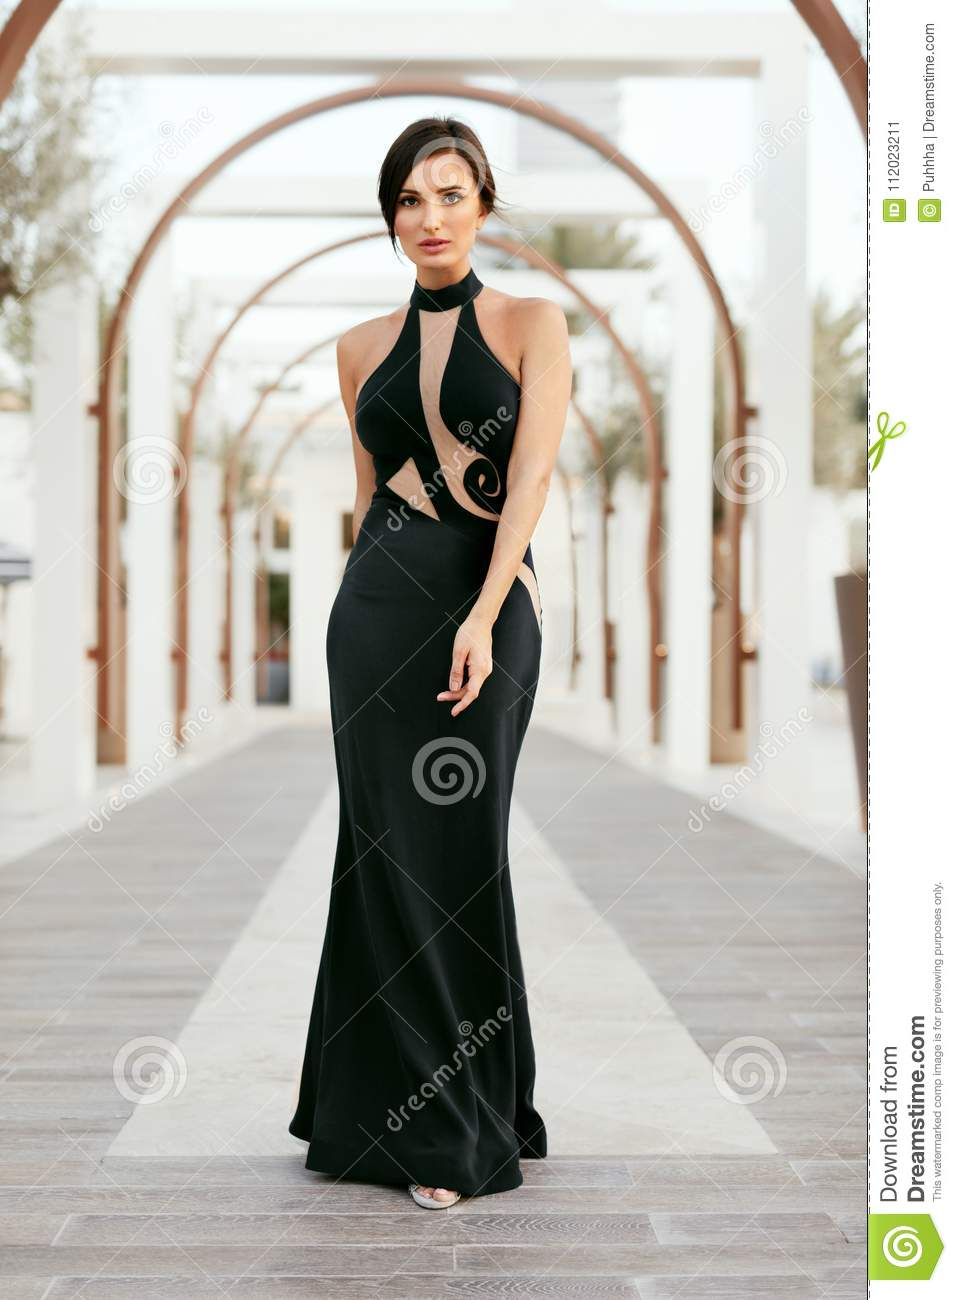 4cabbbd46768 Fashion Girl In Long Black Dress Posing Outdoors. Portrait Of Beautiful  Fashionable Female Model In Glamourous Evening Dress With Elegant Hairstyle  Posing ...